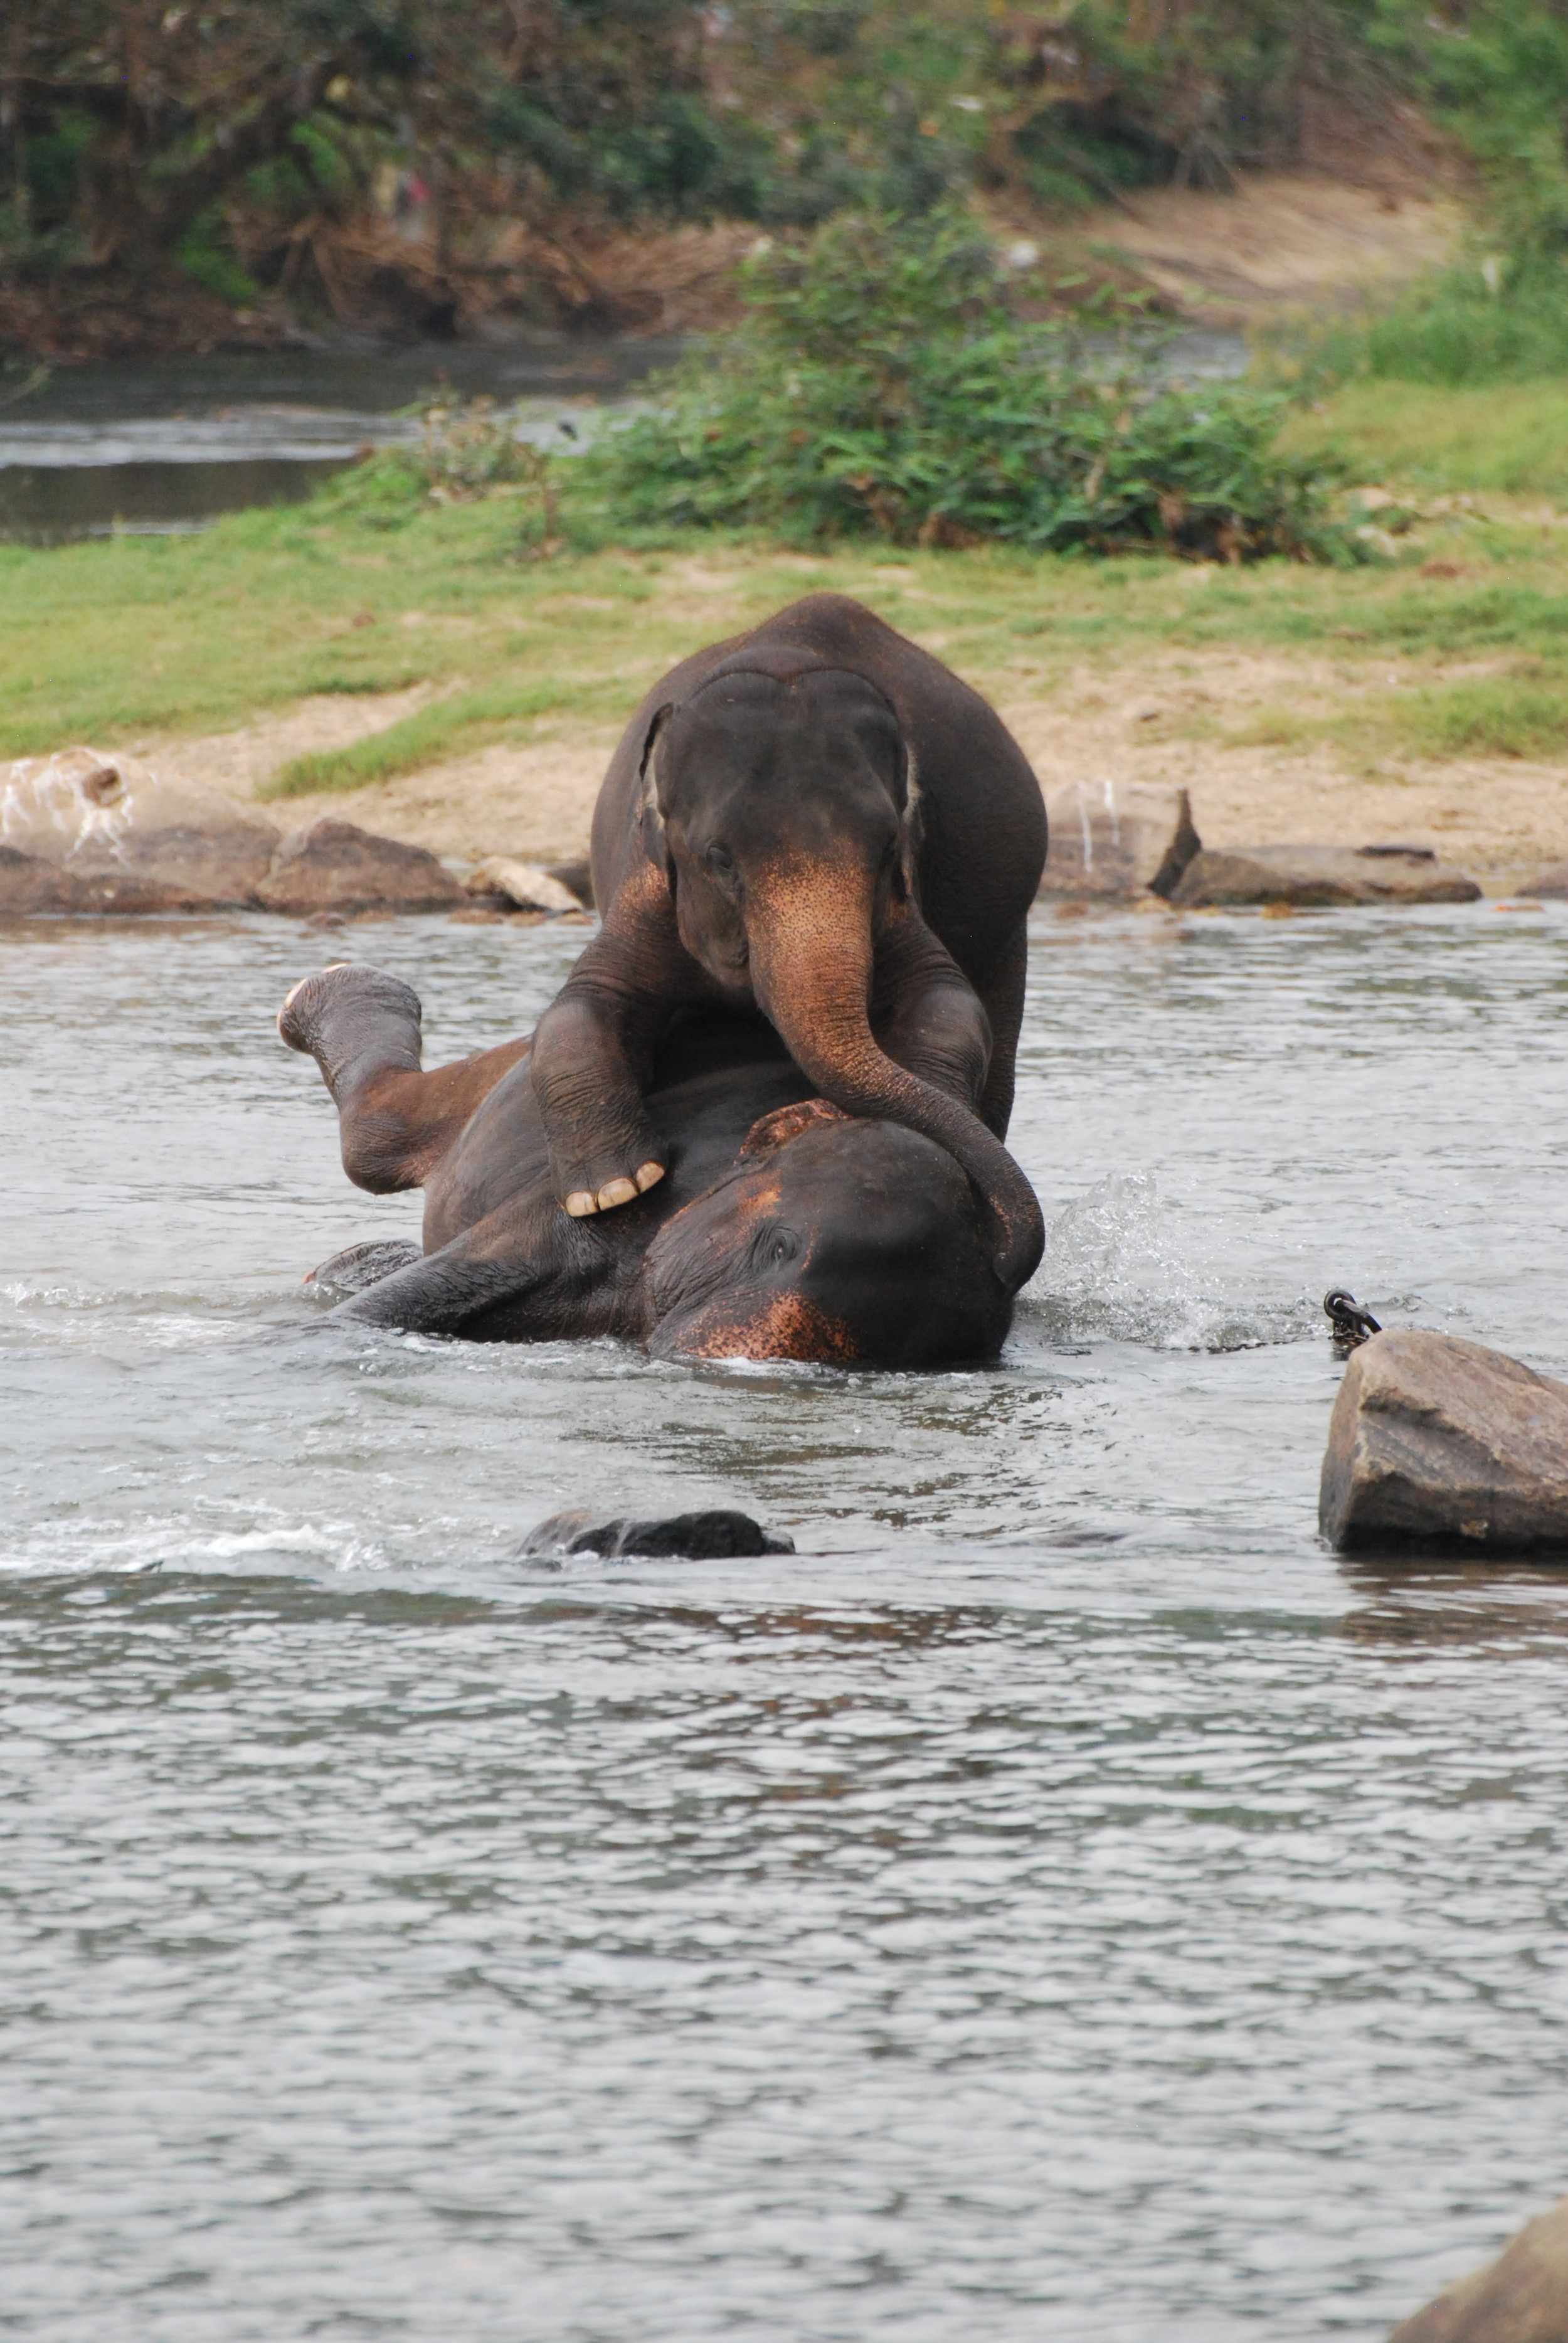 A few younger elephants playing with each other in the river at Pinnawala. 14 January 2019.